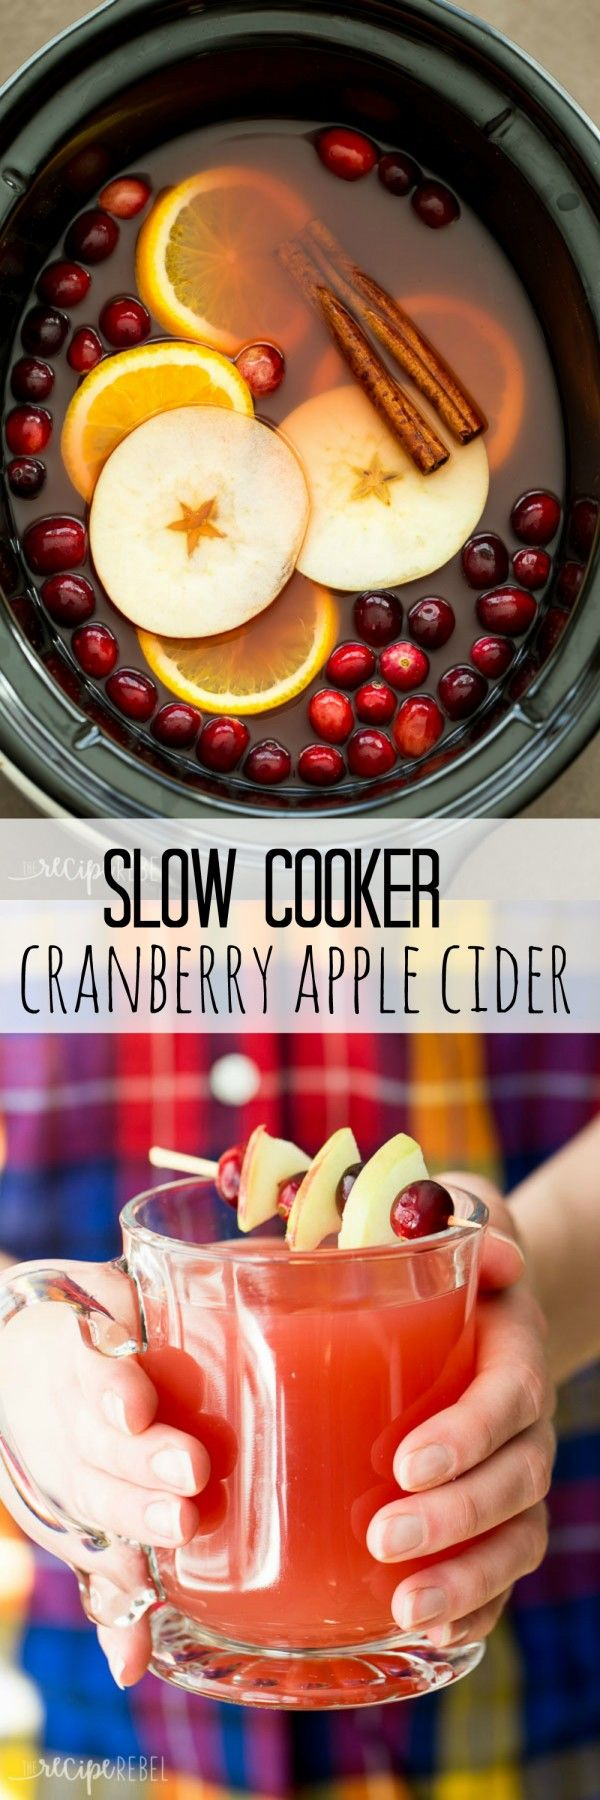 Get the recipe ♥ Slow Cooker Cranberry Apple Cider @recipes_to_go